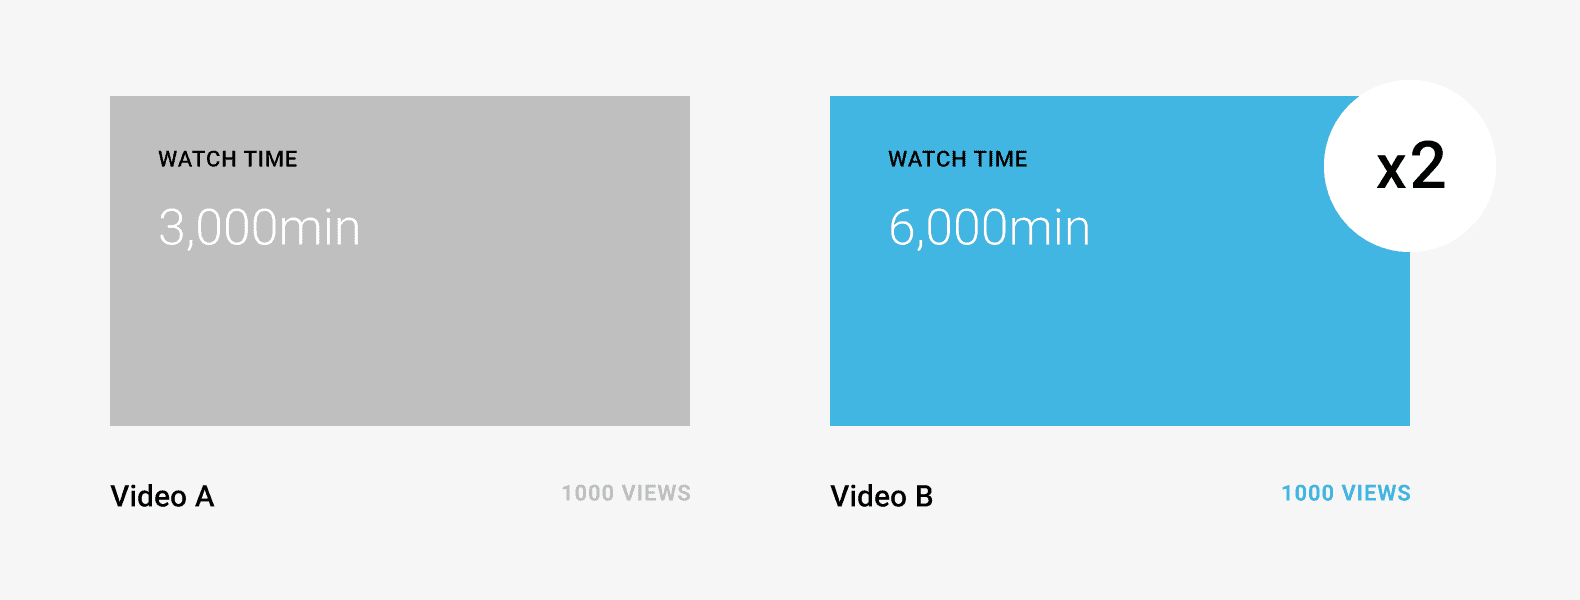 Double the watch time